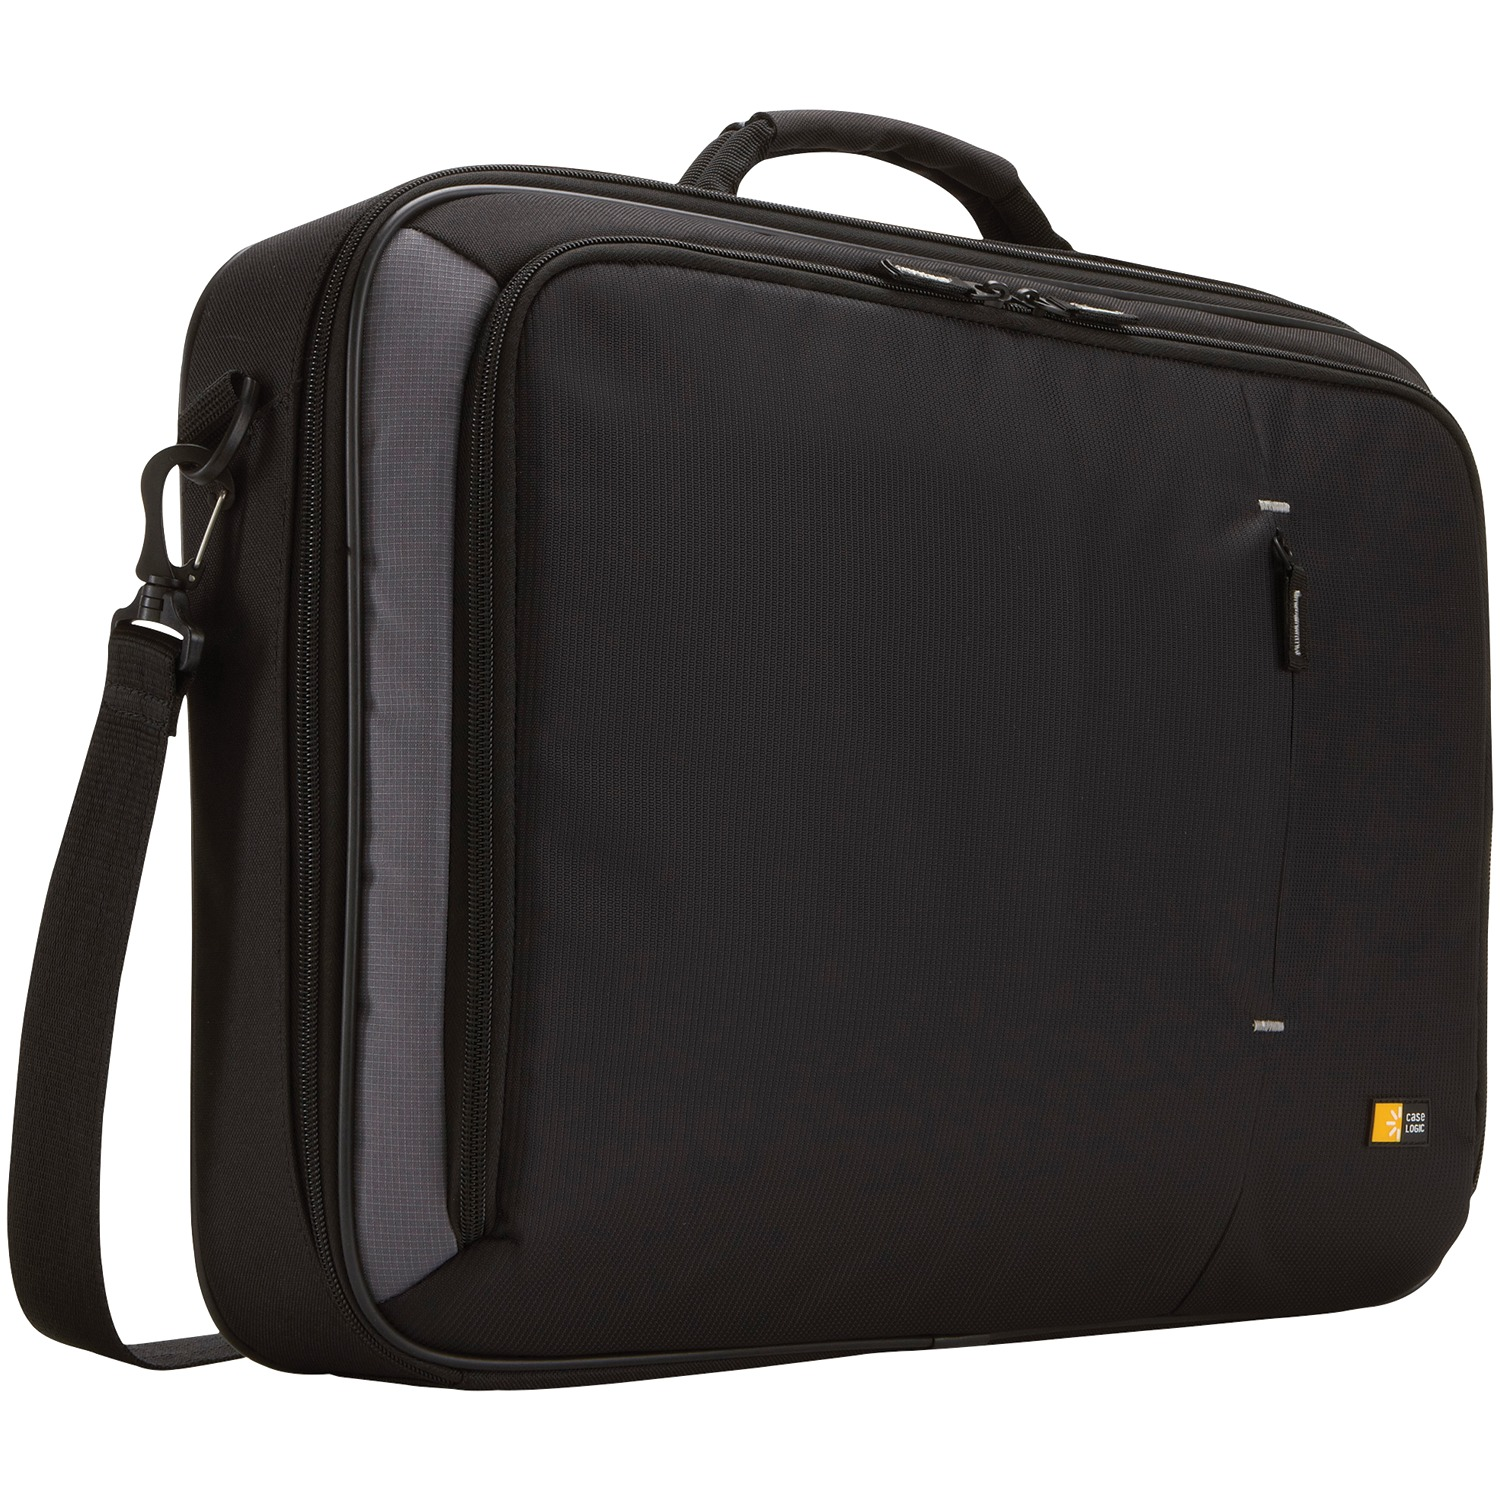 "Case Logic 3200926 18"" Clamshell Sport Laptop Case"